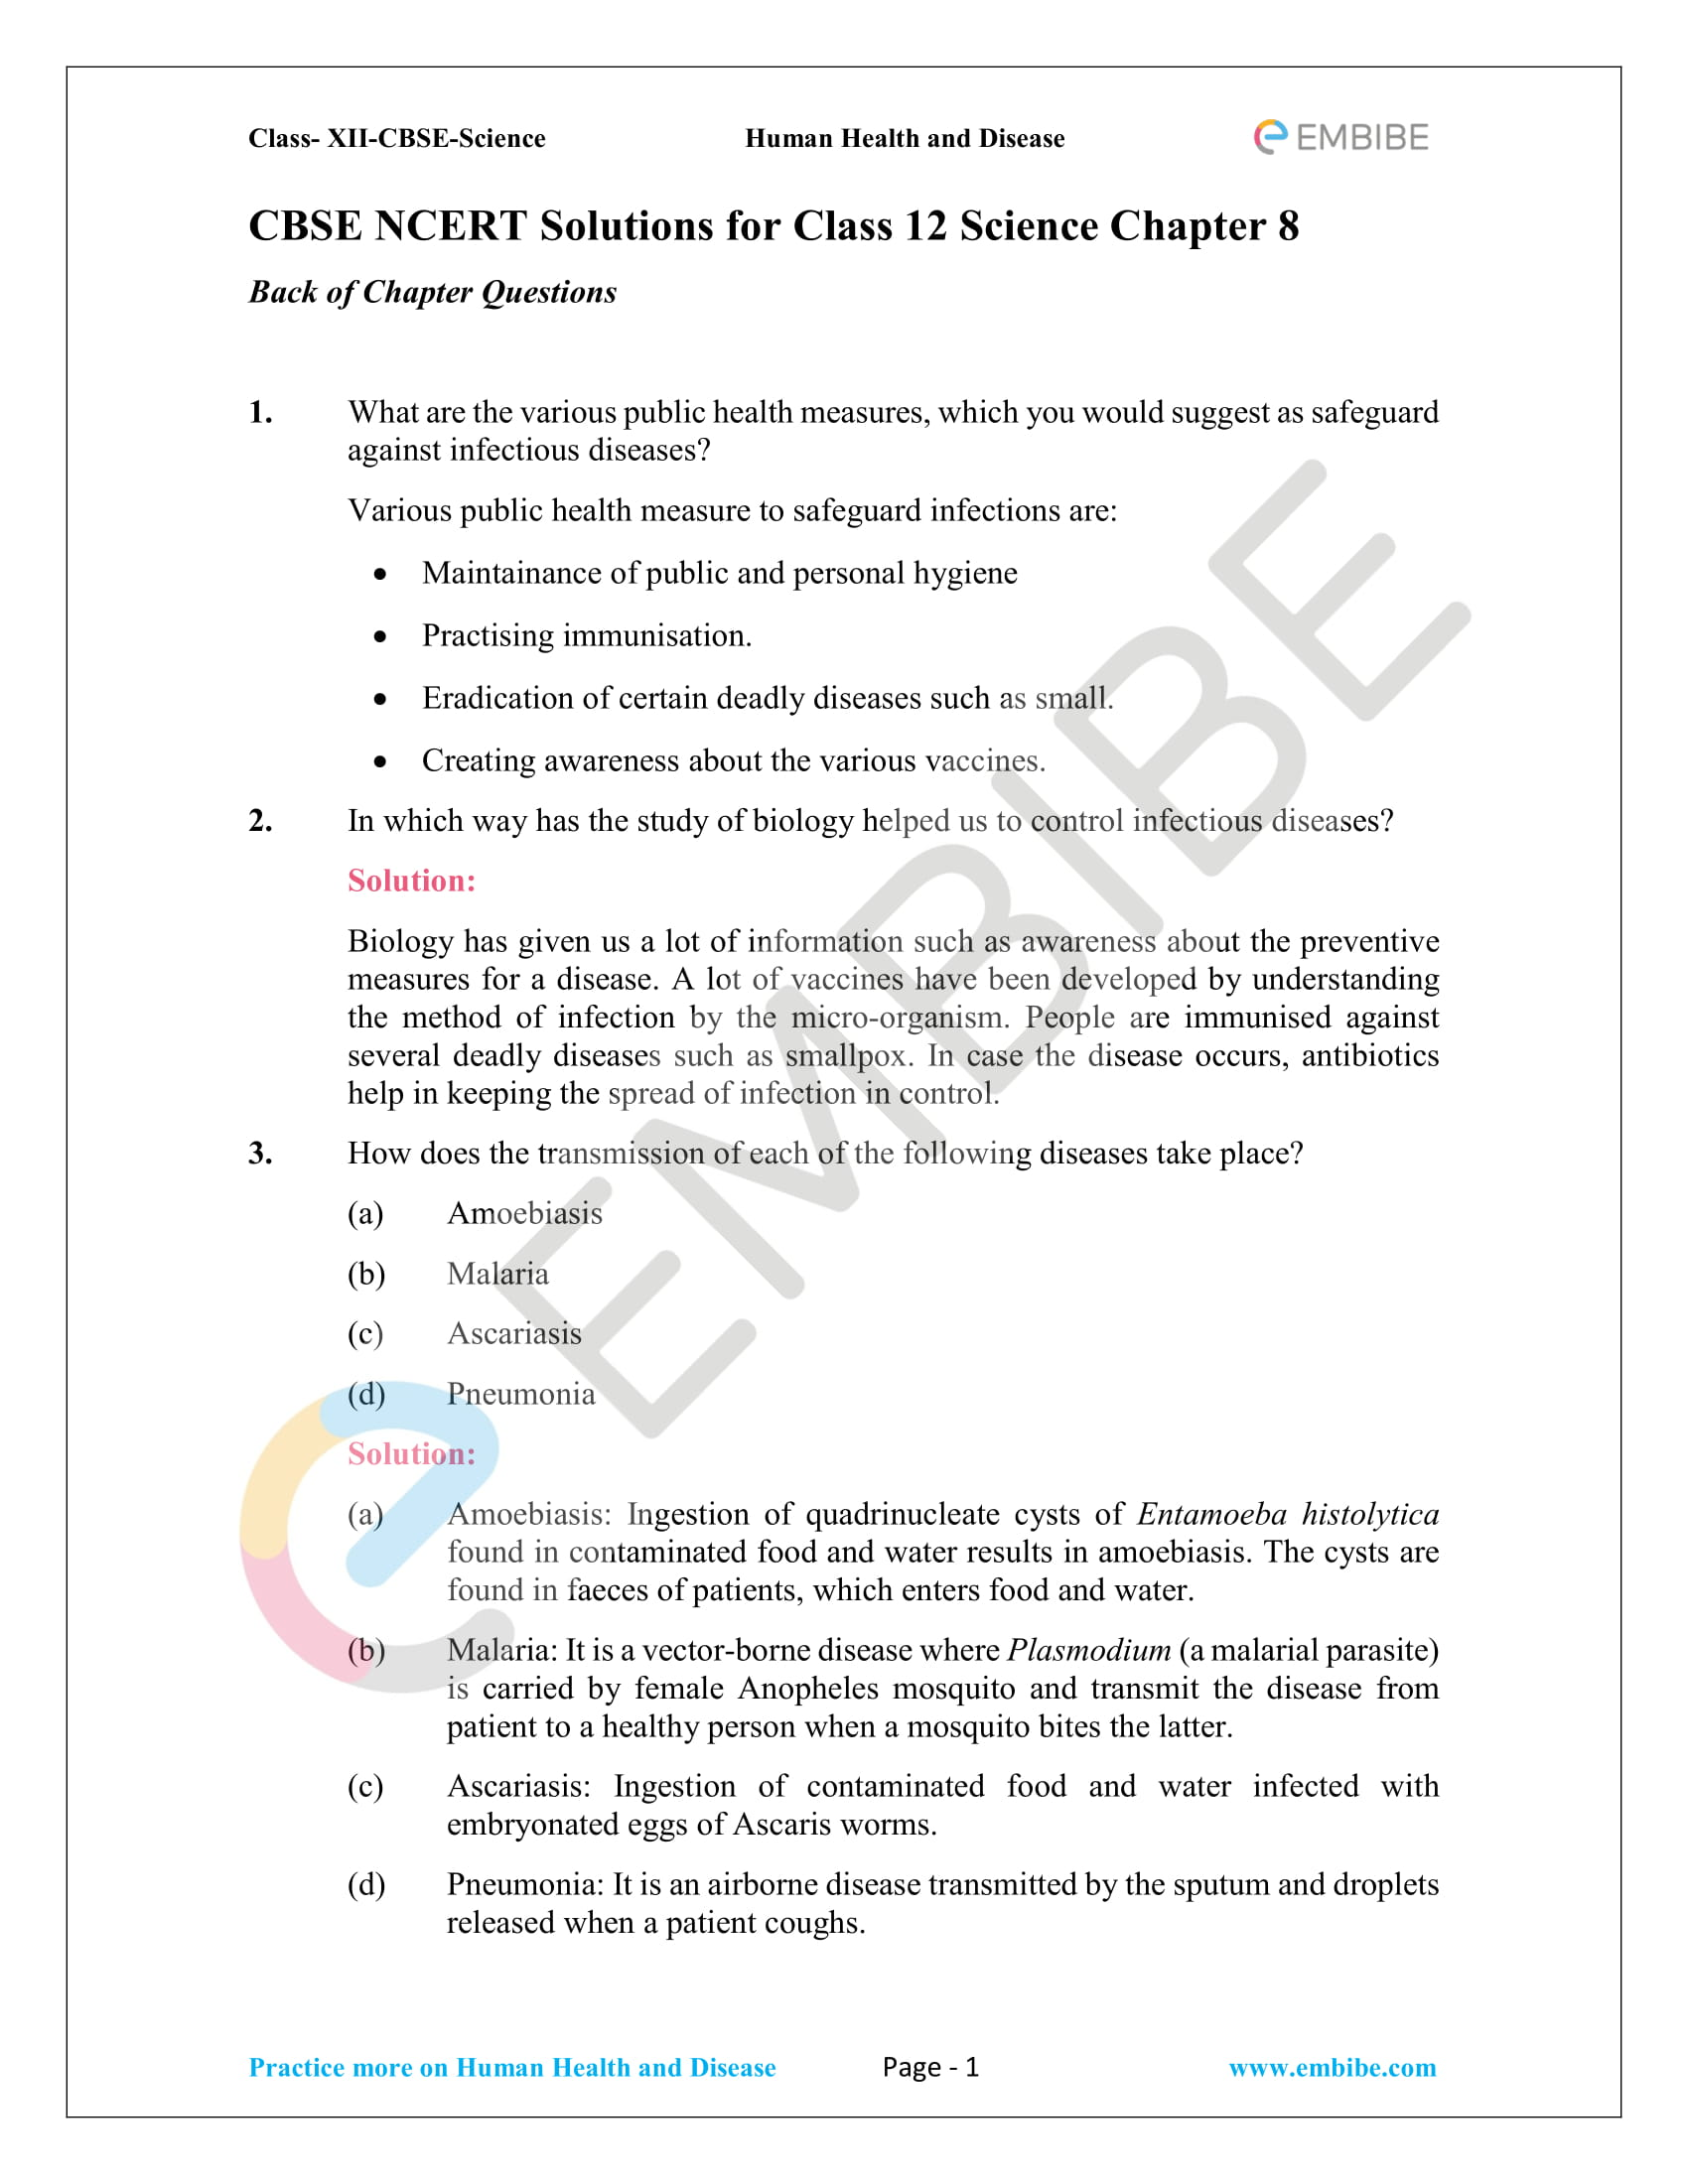 NCERT Solutions for Class 12 Biology Chapter 8: Human Health and Diseases - 1